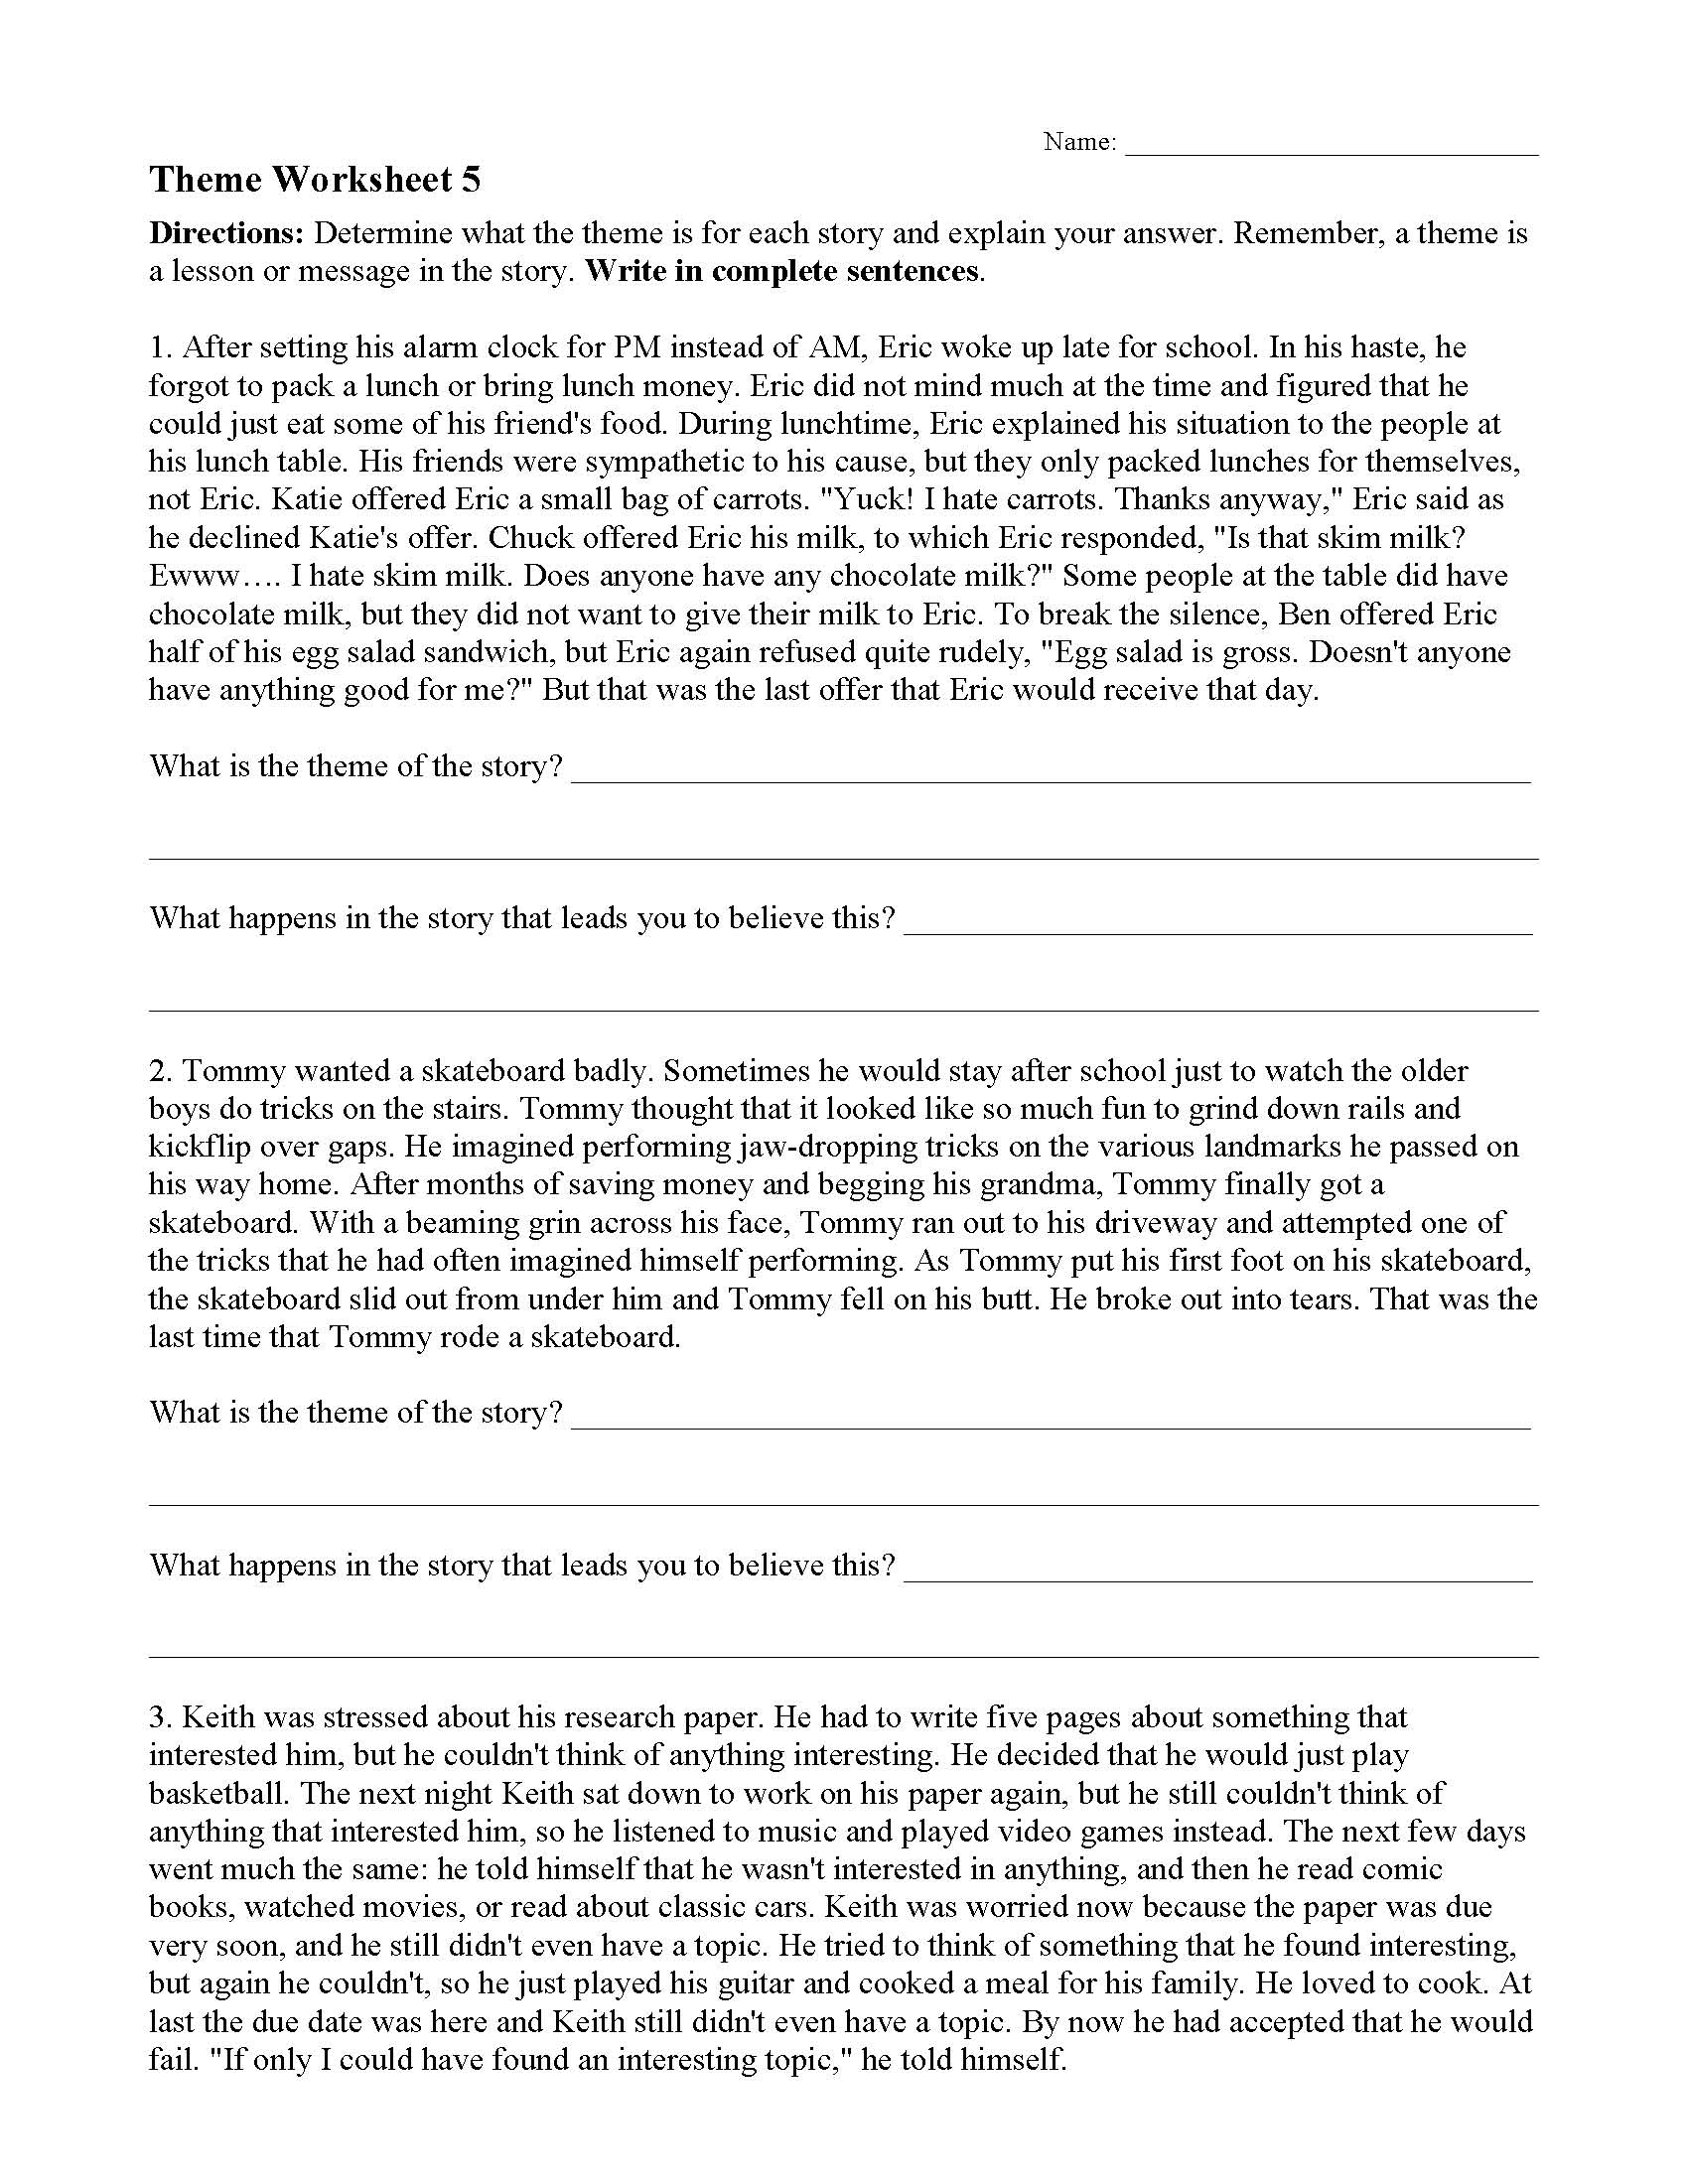 Theme Worksheet 5